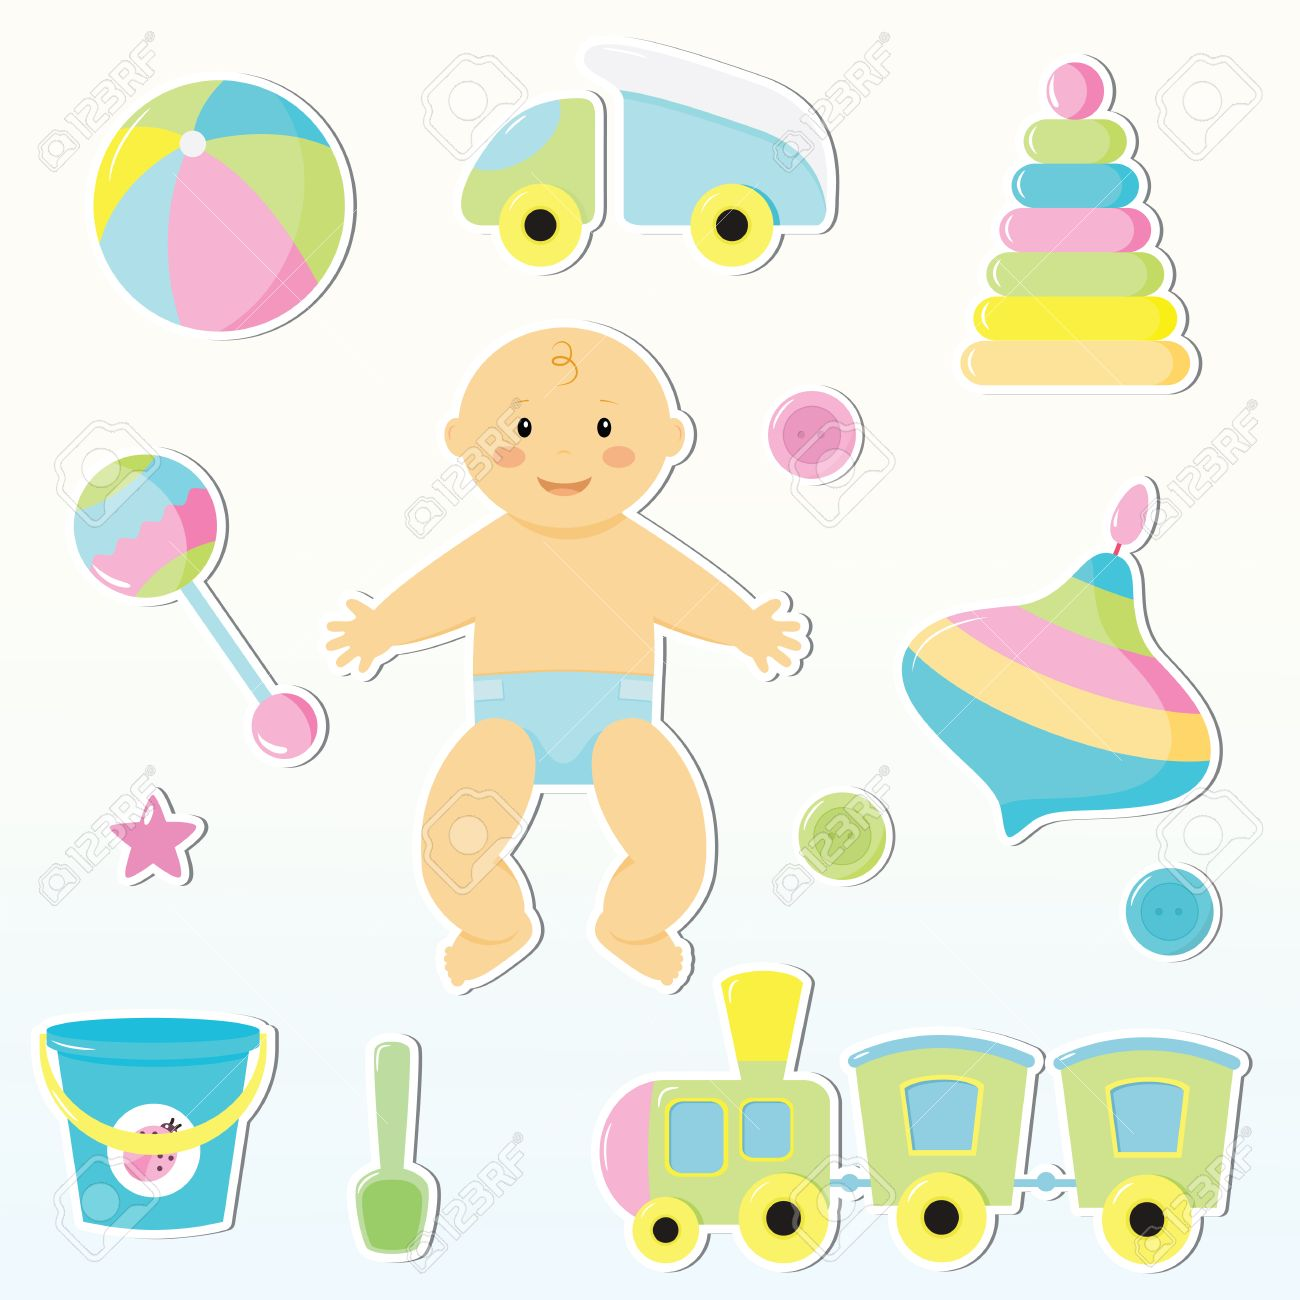 set of cute baby toy stickers design elements for baby shower